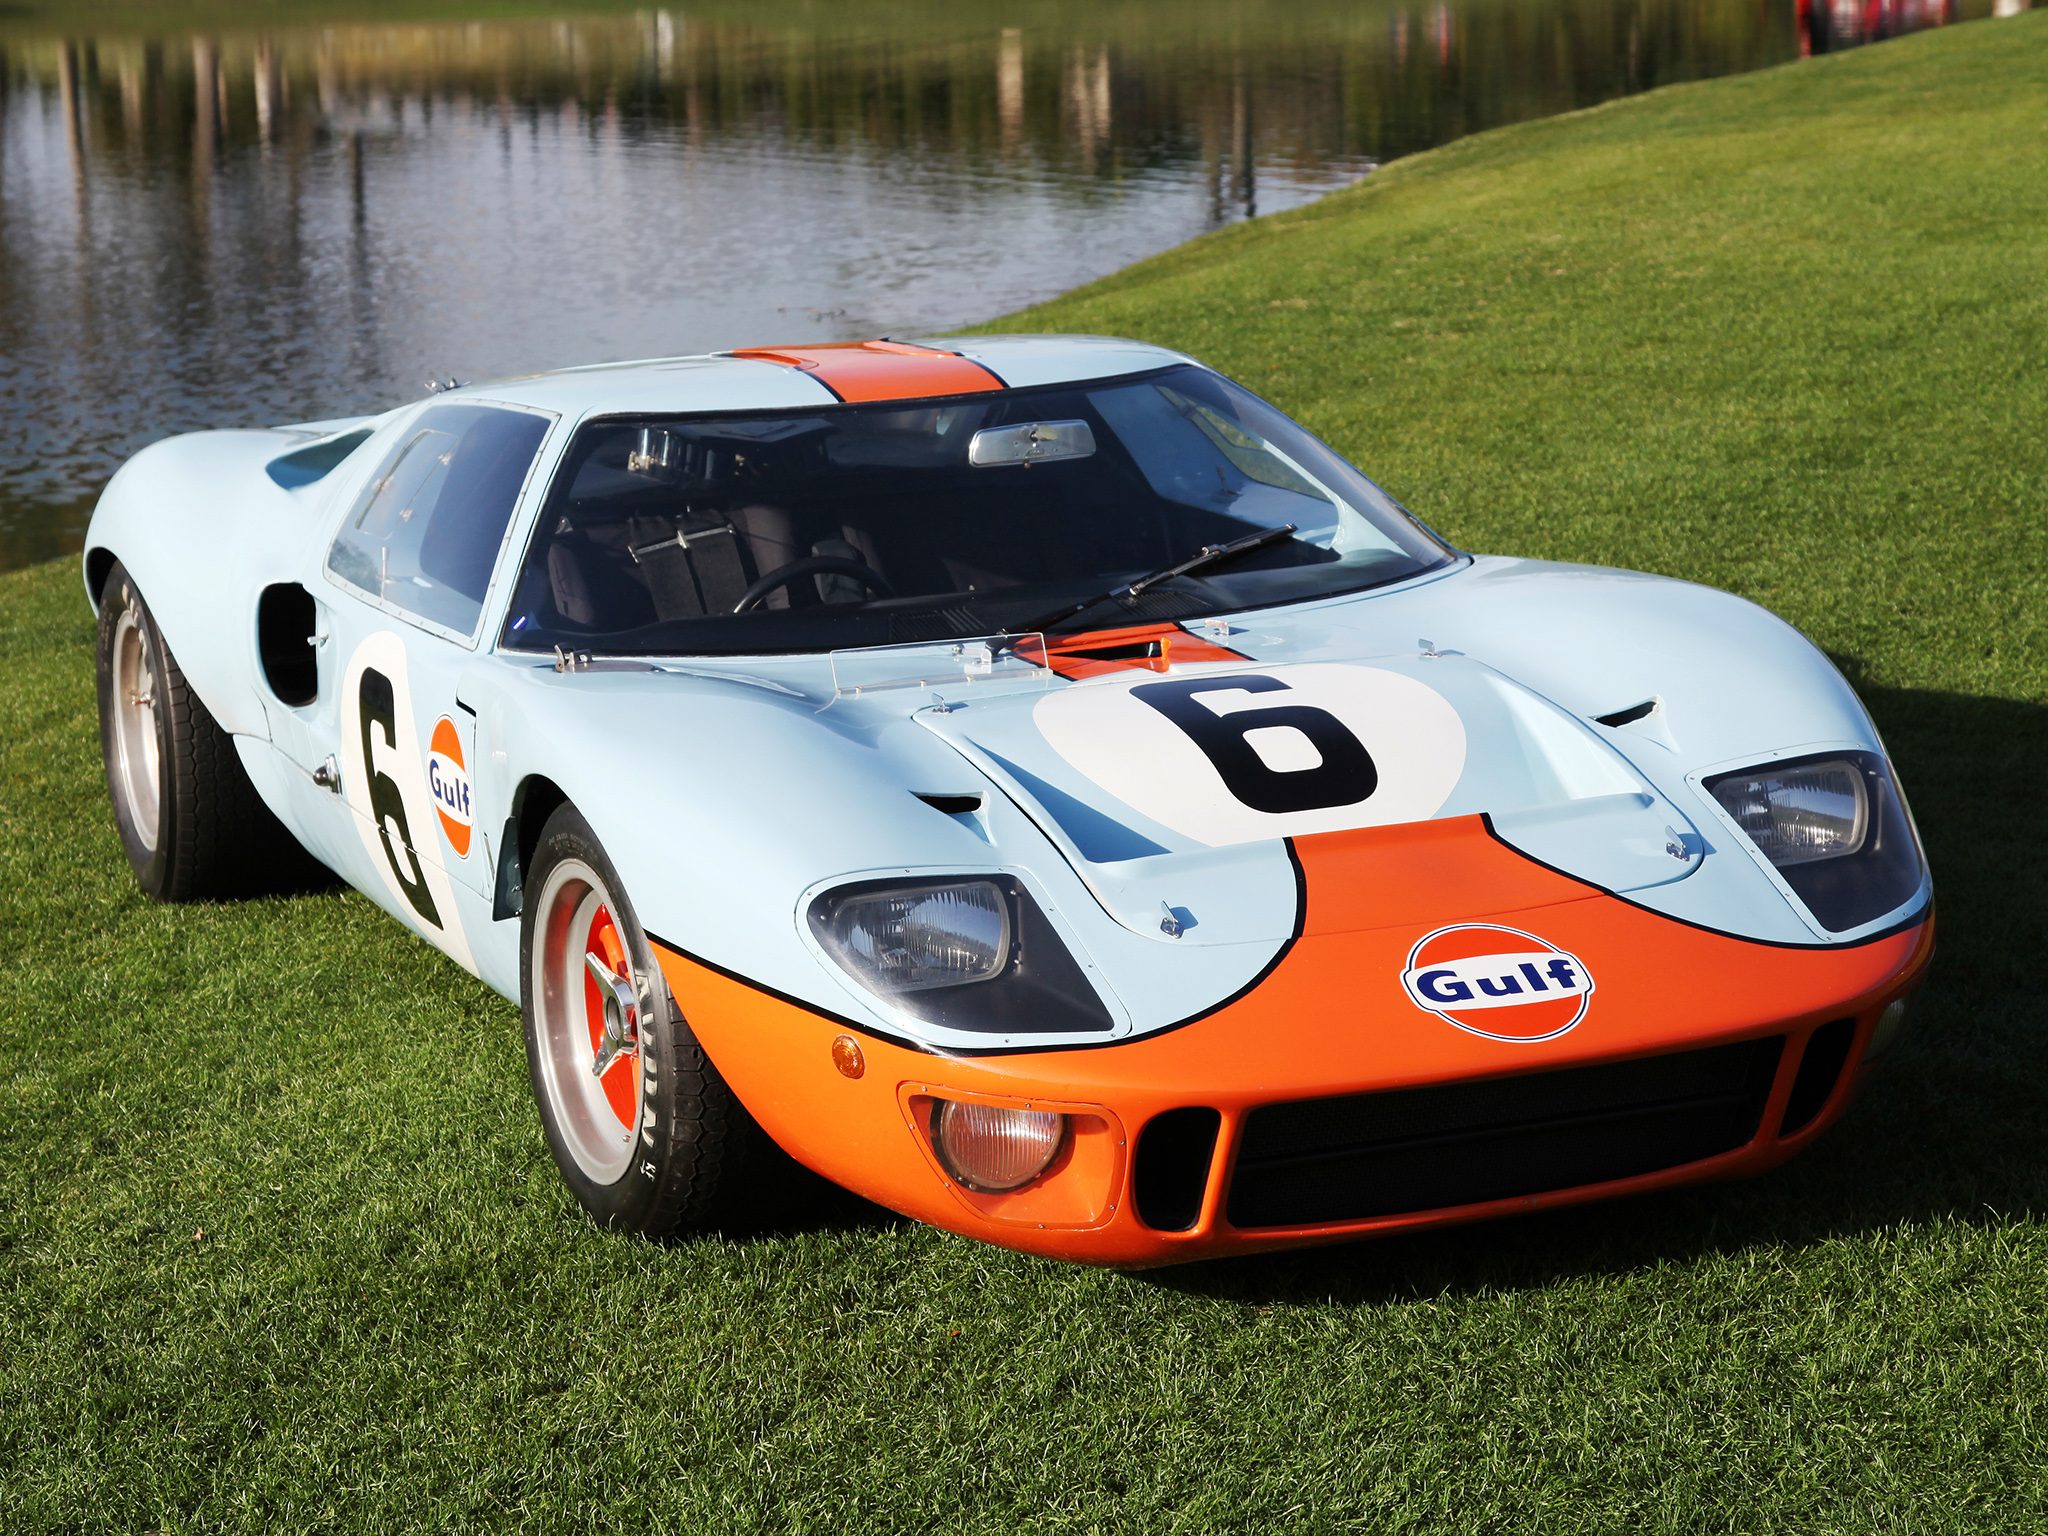 Wallpaper Super Cars Download 1968 Ford Gt40 Gulf Oil Le Mans Race Racing Supercar